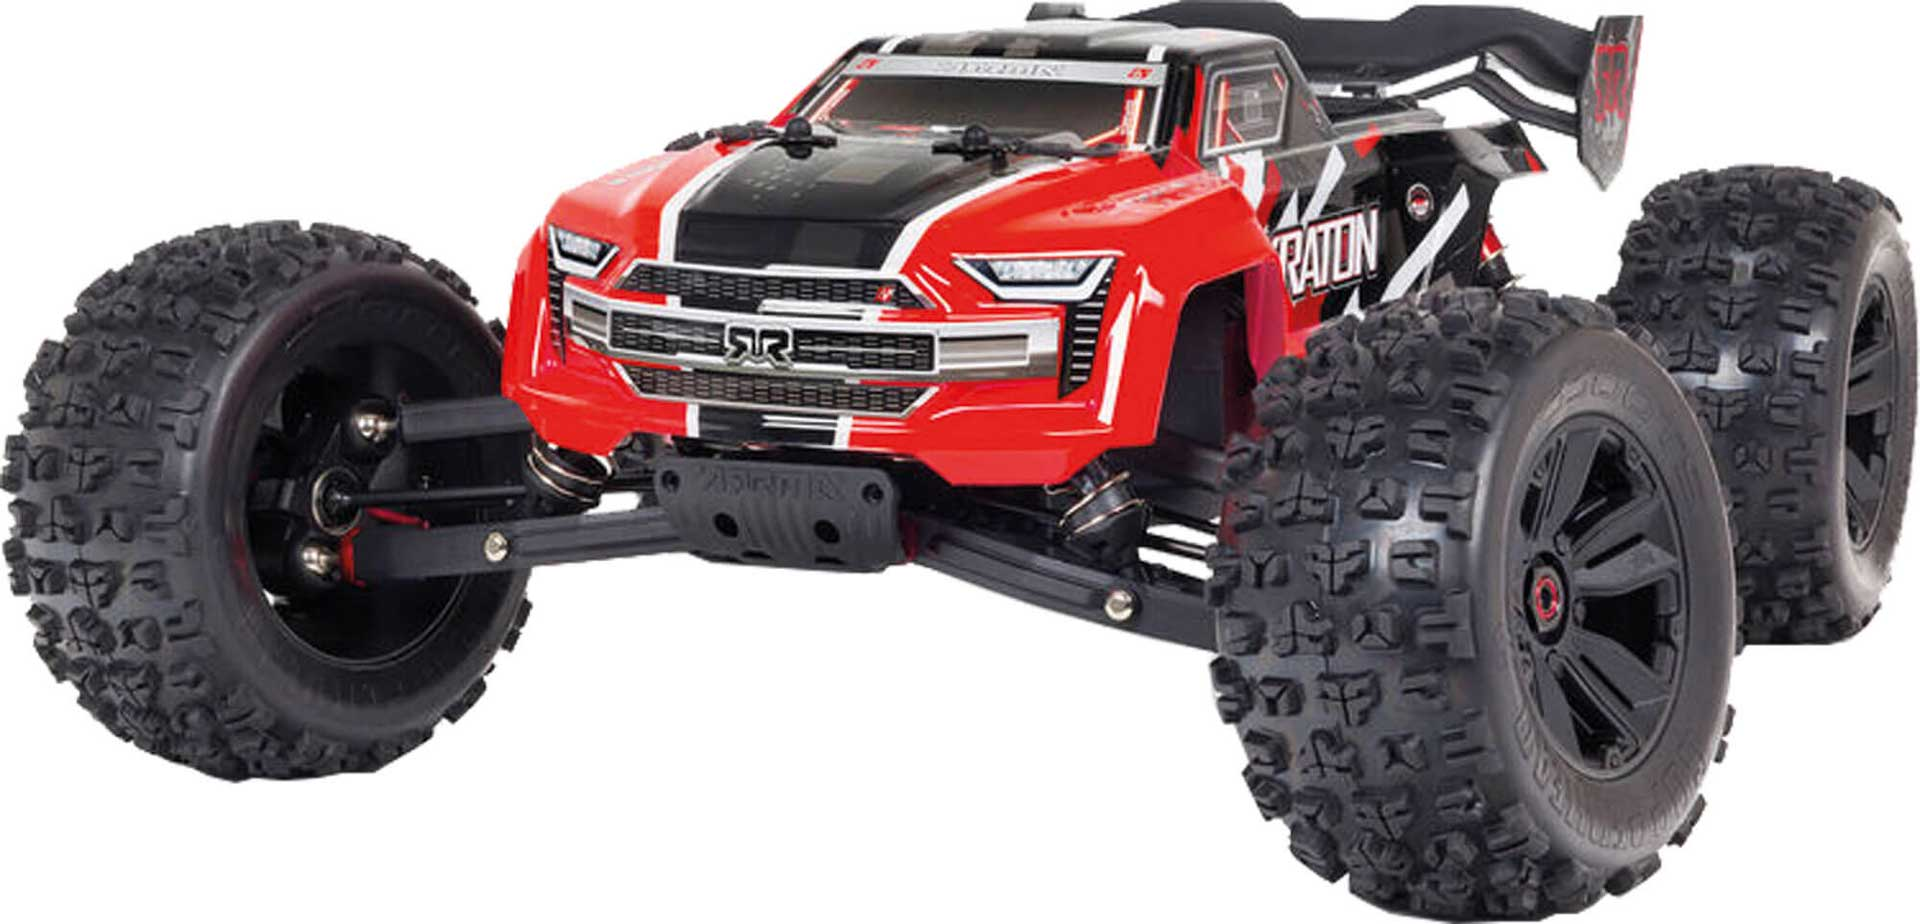 ARRMA Kraton 6S V5 4WD BLX 1/8 RTR Rot Speed Monster Truck